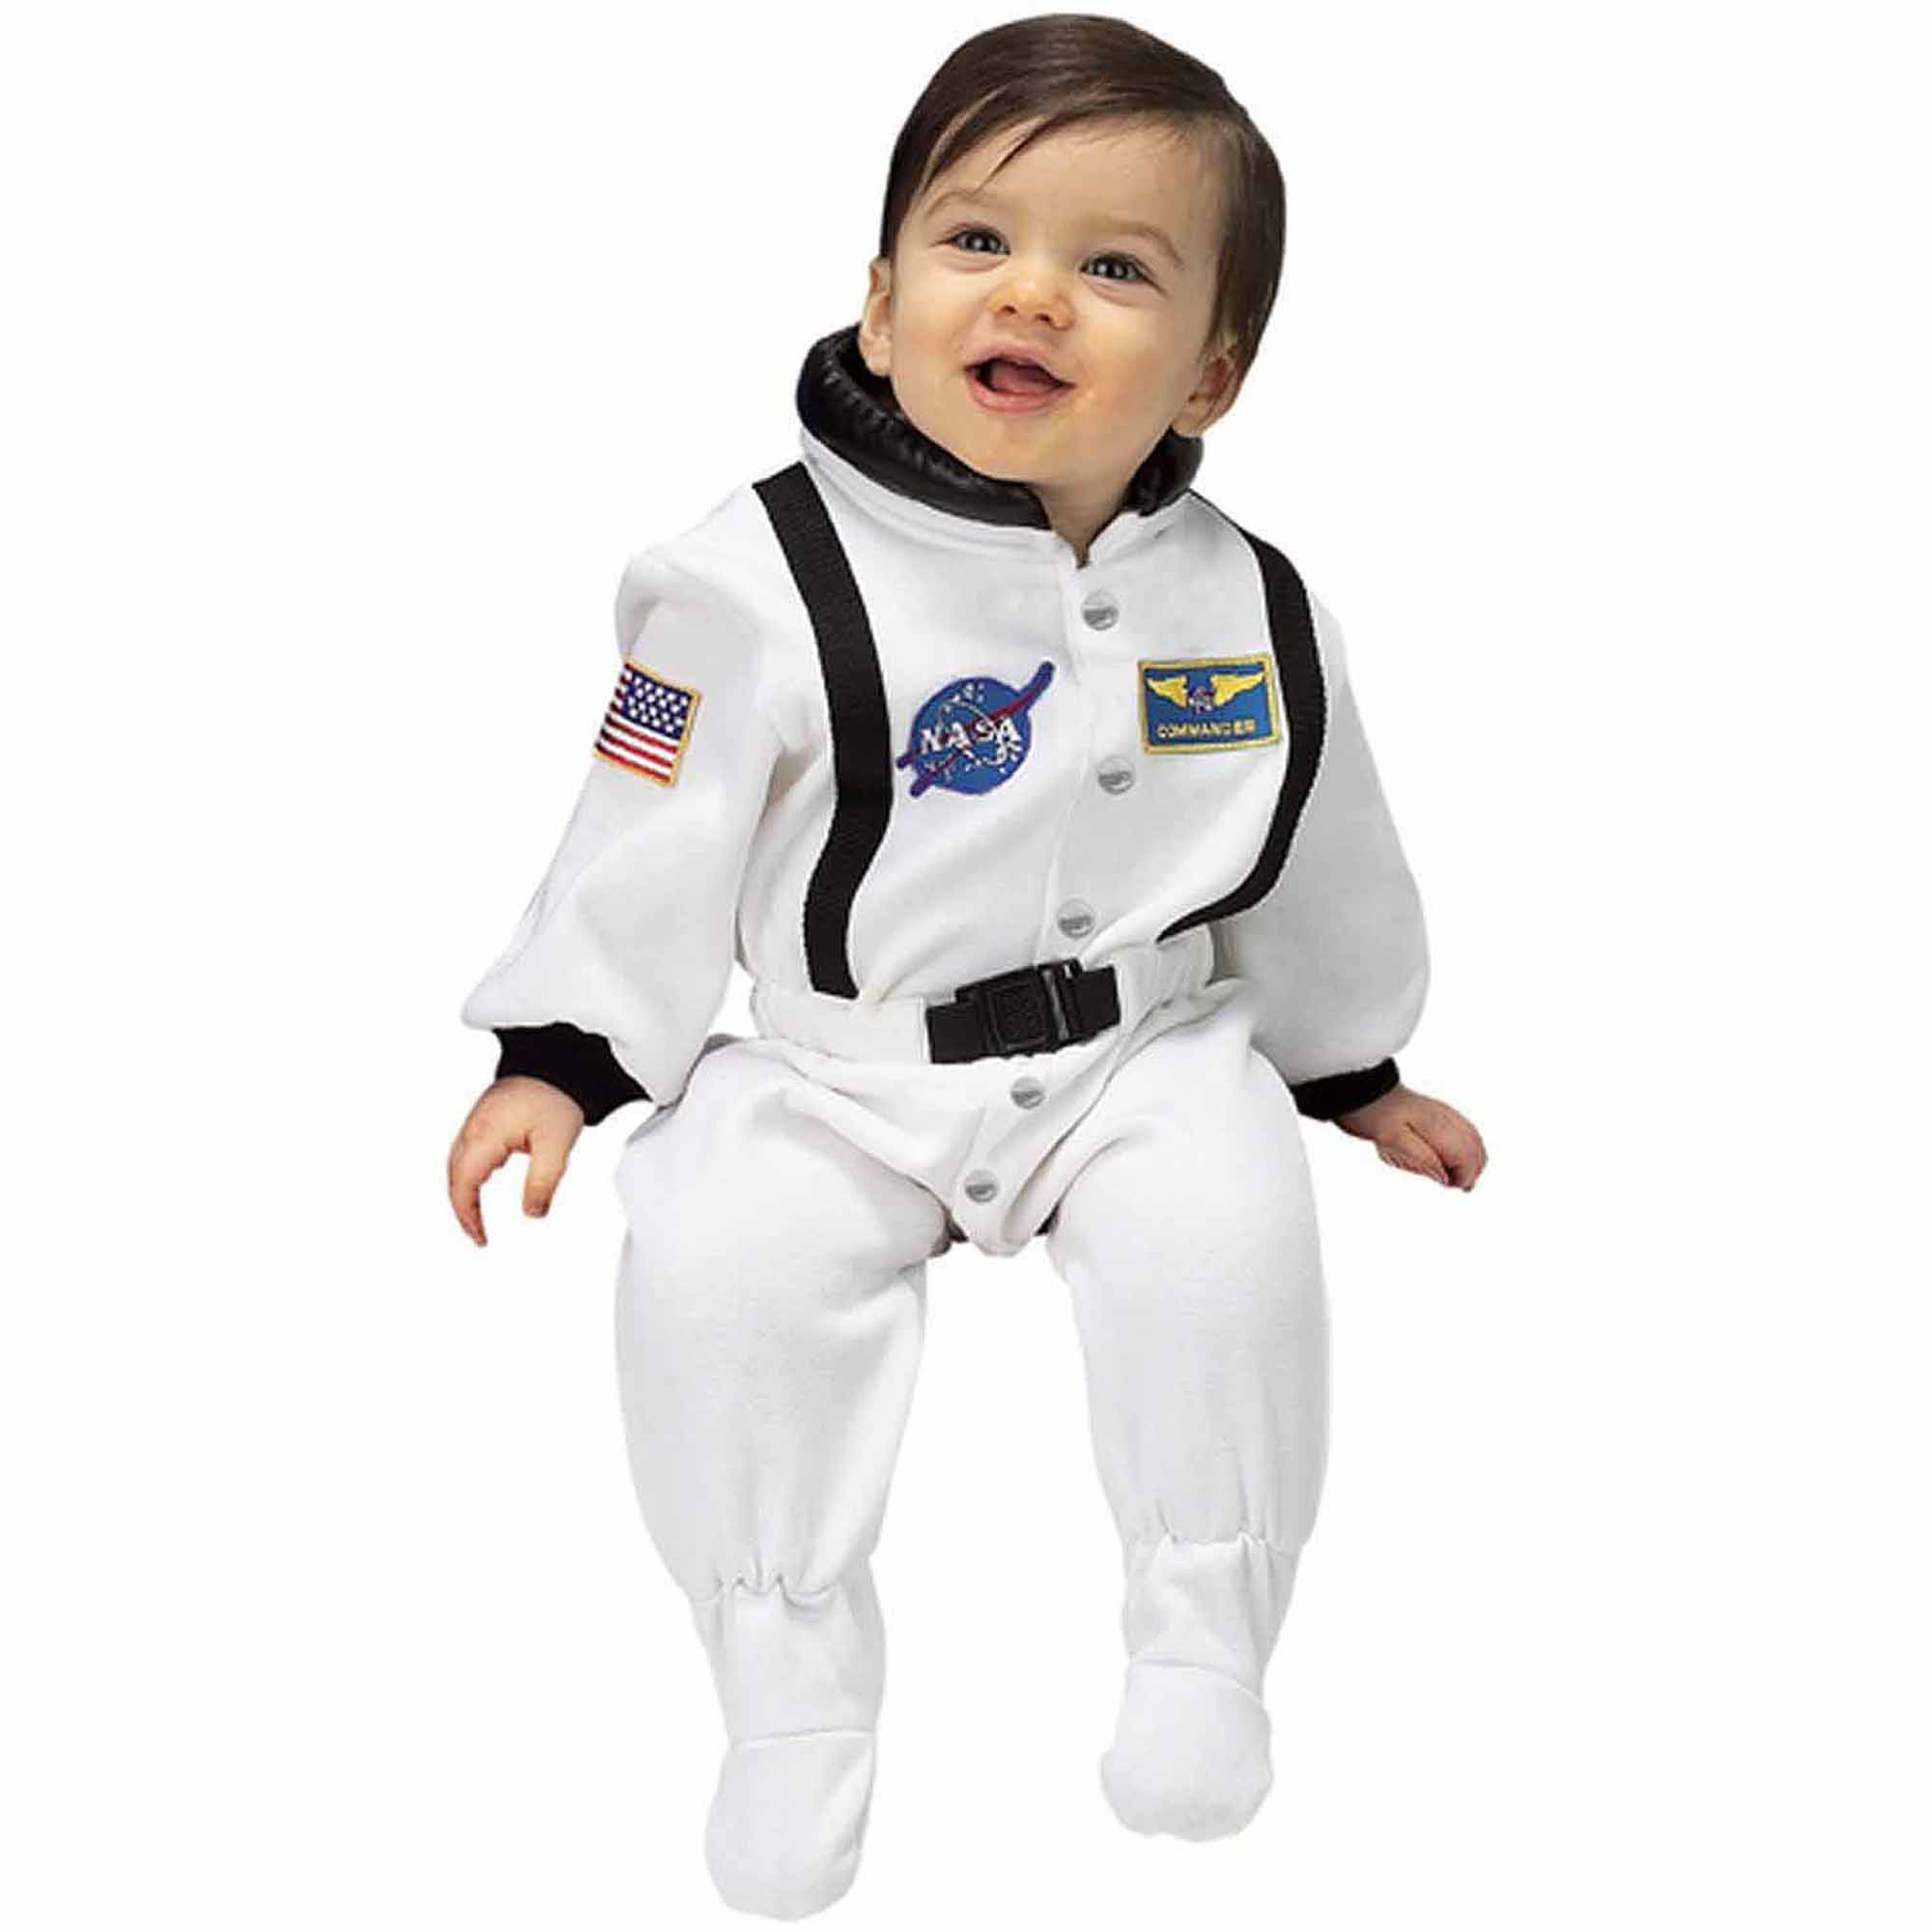 NASA White Jr. Astronaut Suit Infant Halloween Costume, Size 6-12 Months